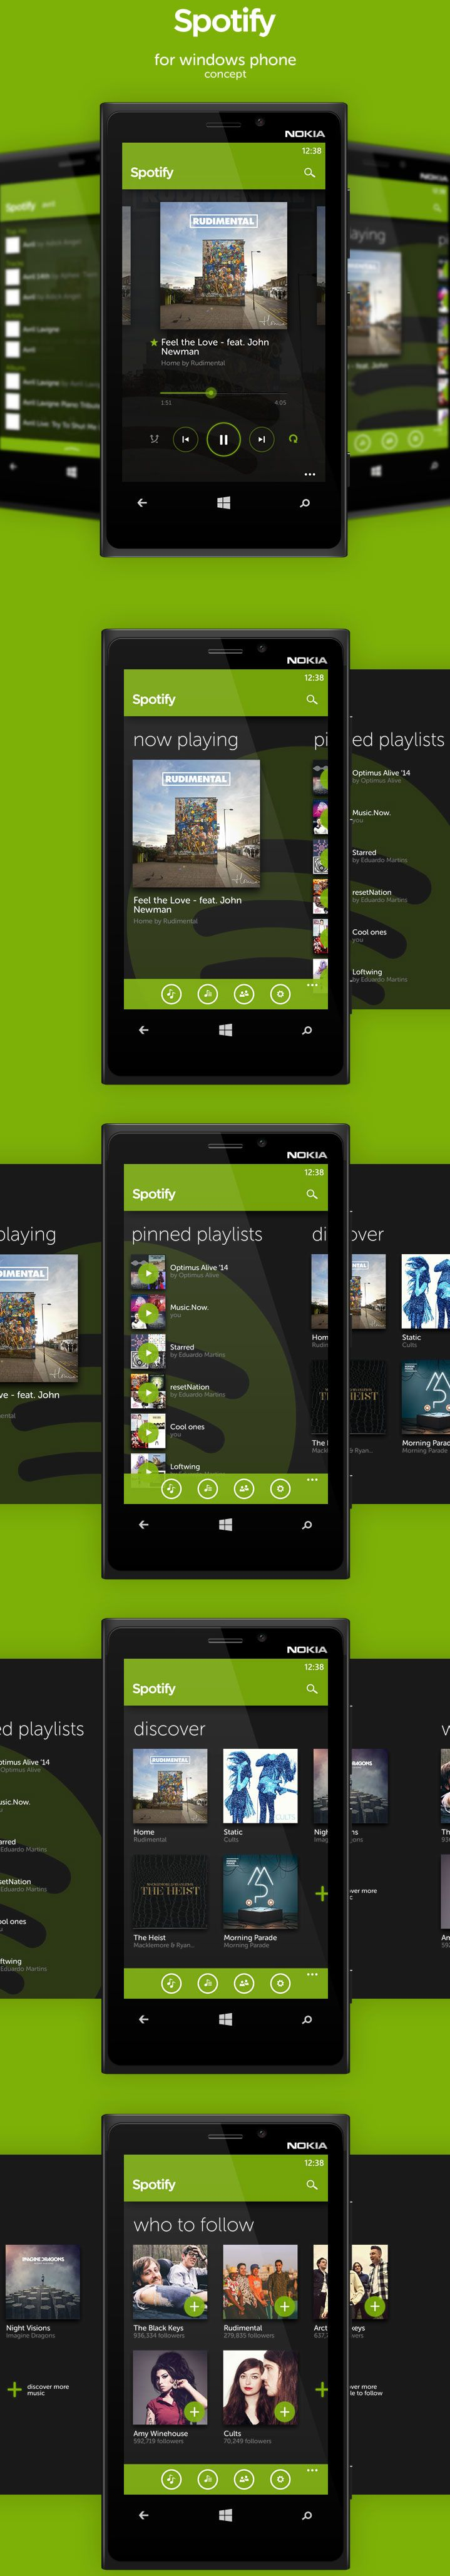 Spotify for Windows Phone (loose ideas) #spotify #audio #player #ui #mobile #smarphone